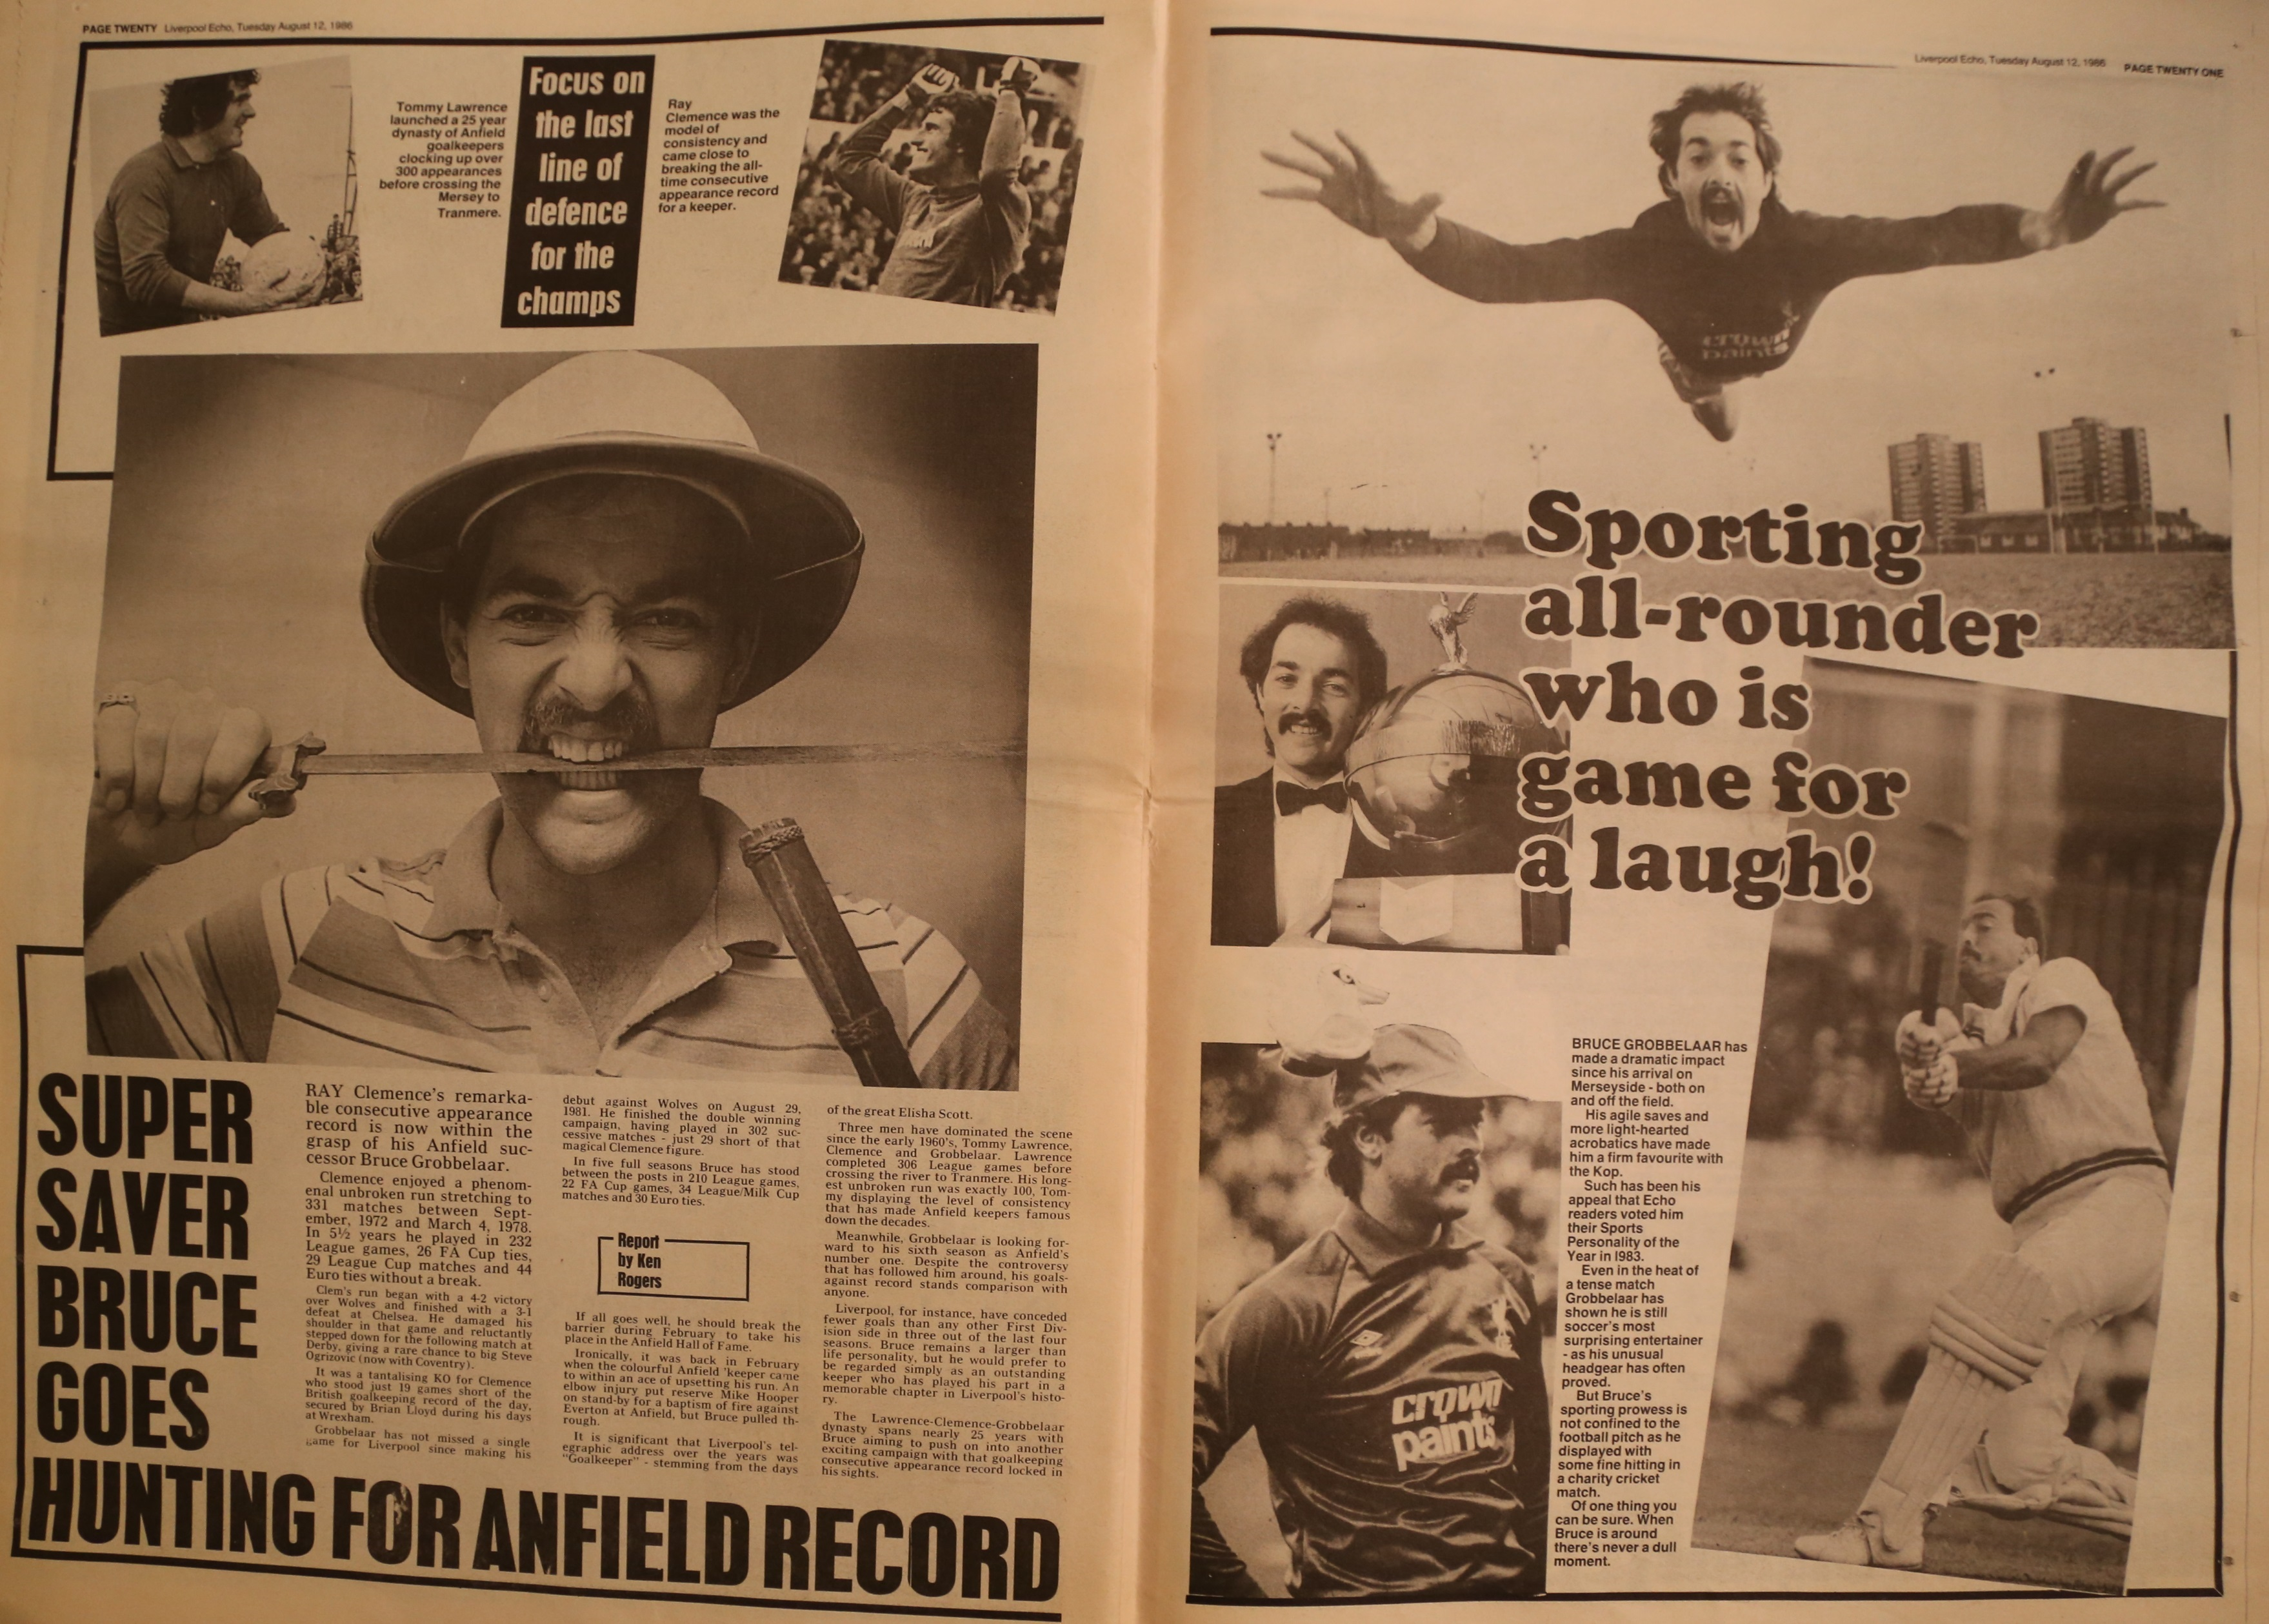 Sporting all-rounder who is game for a laugh - 12 August 1986